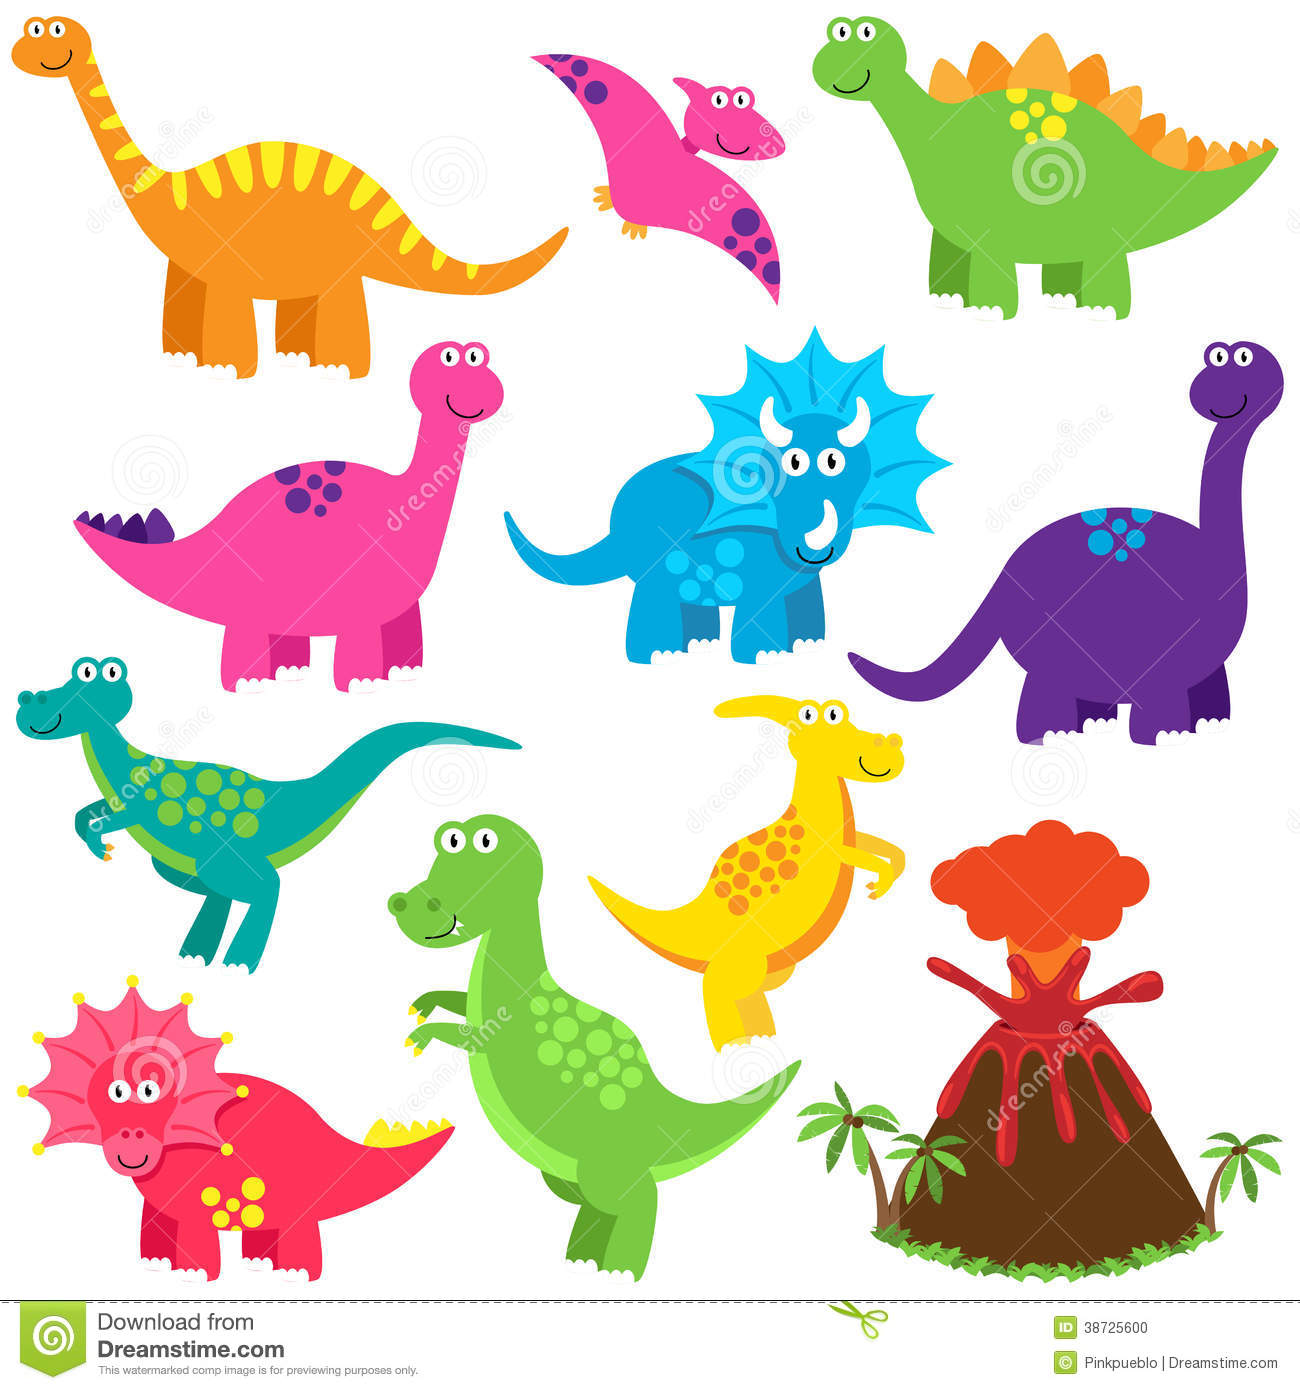 Image of: Isolated Vector Collection Of Cute Cartoon Dinosaurs Dreamstimecom Vector Collection Of Cute Cartoon Dinosaurs Stock Vector